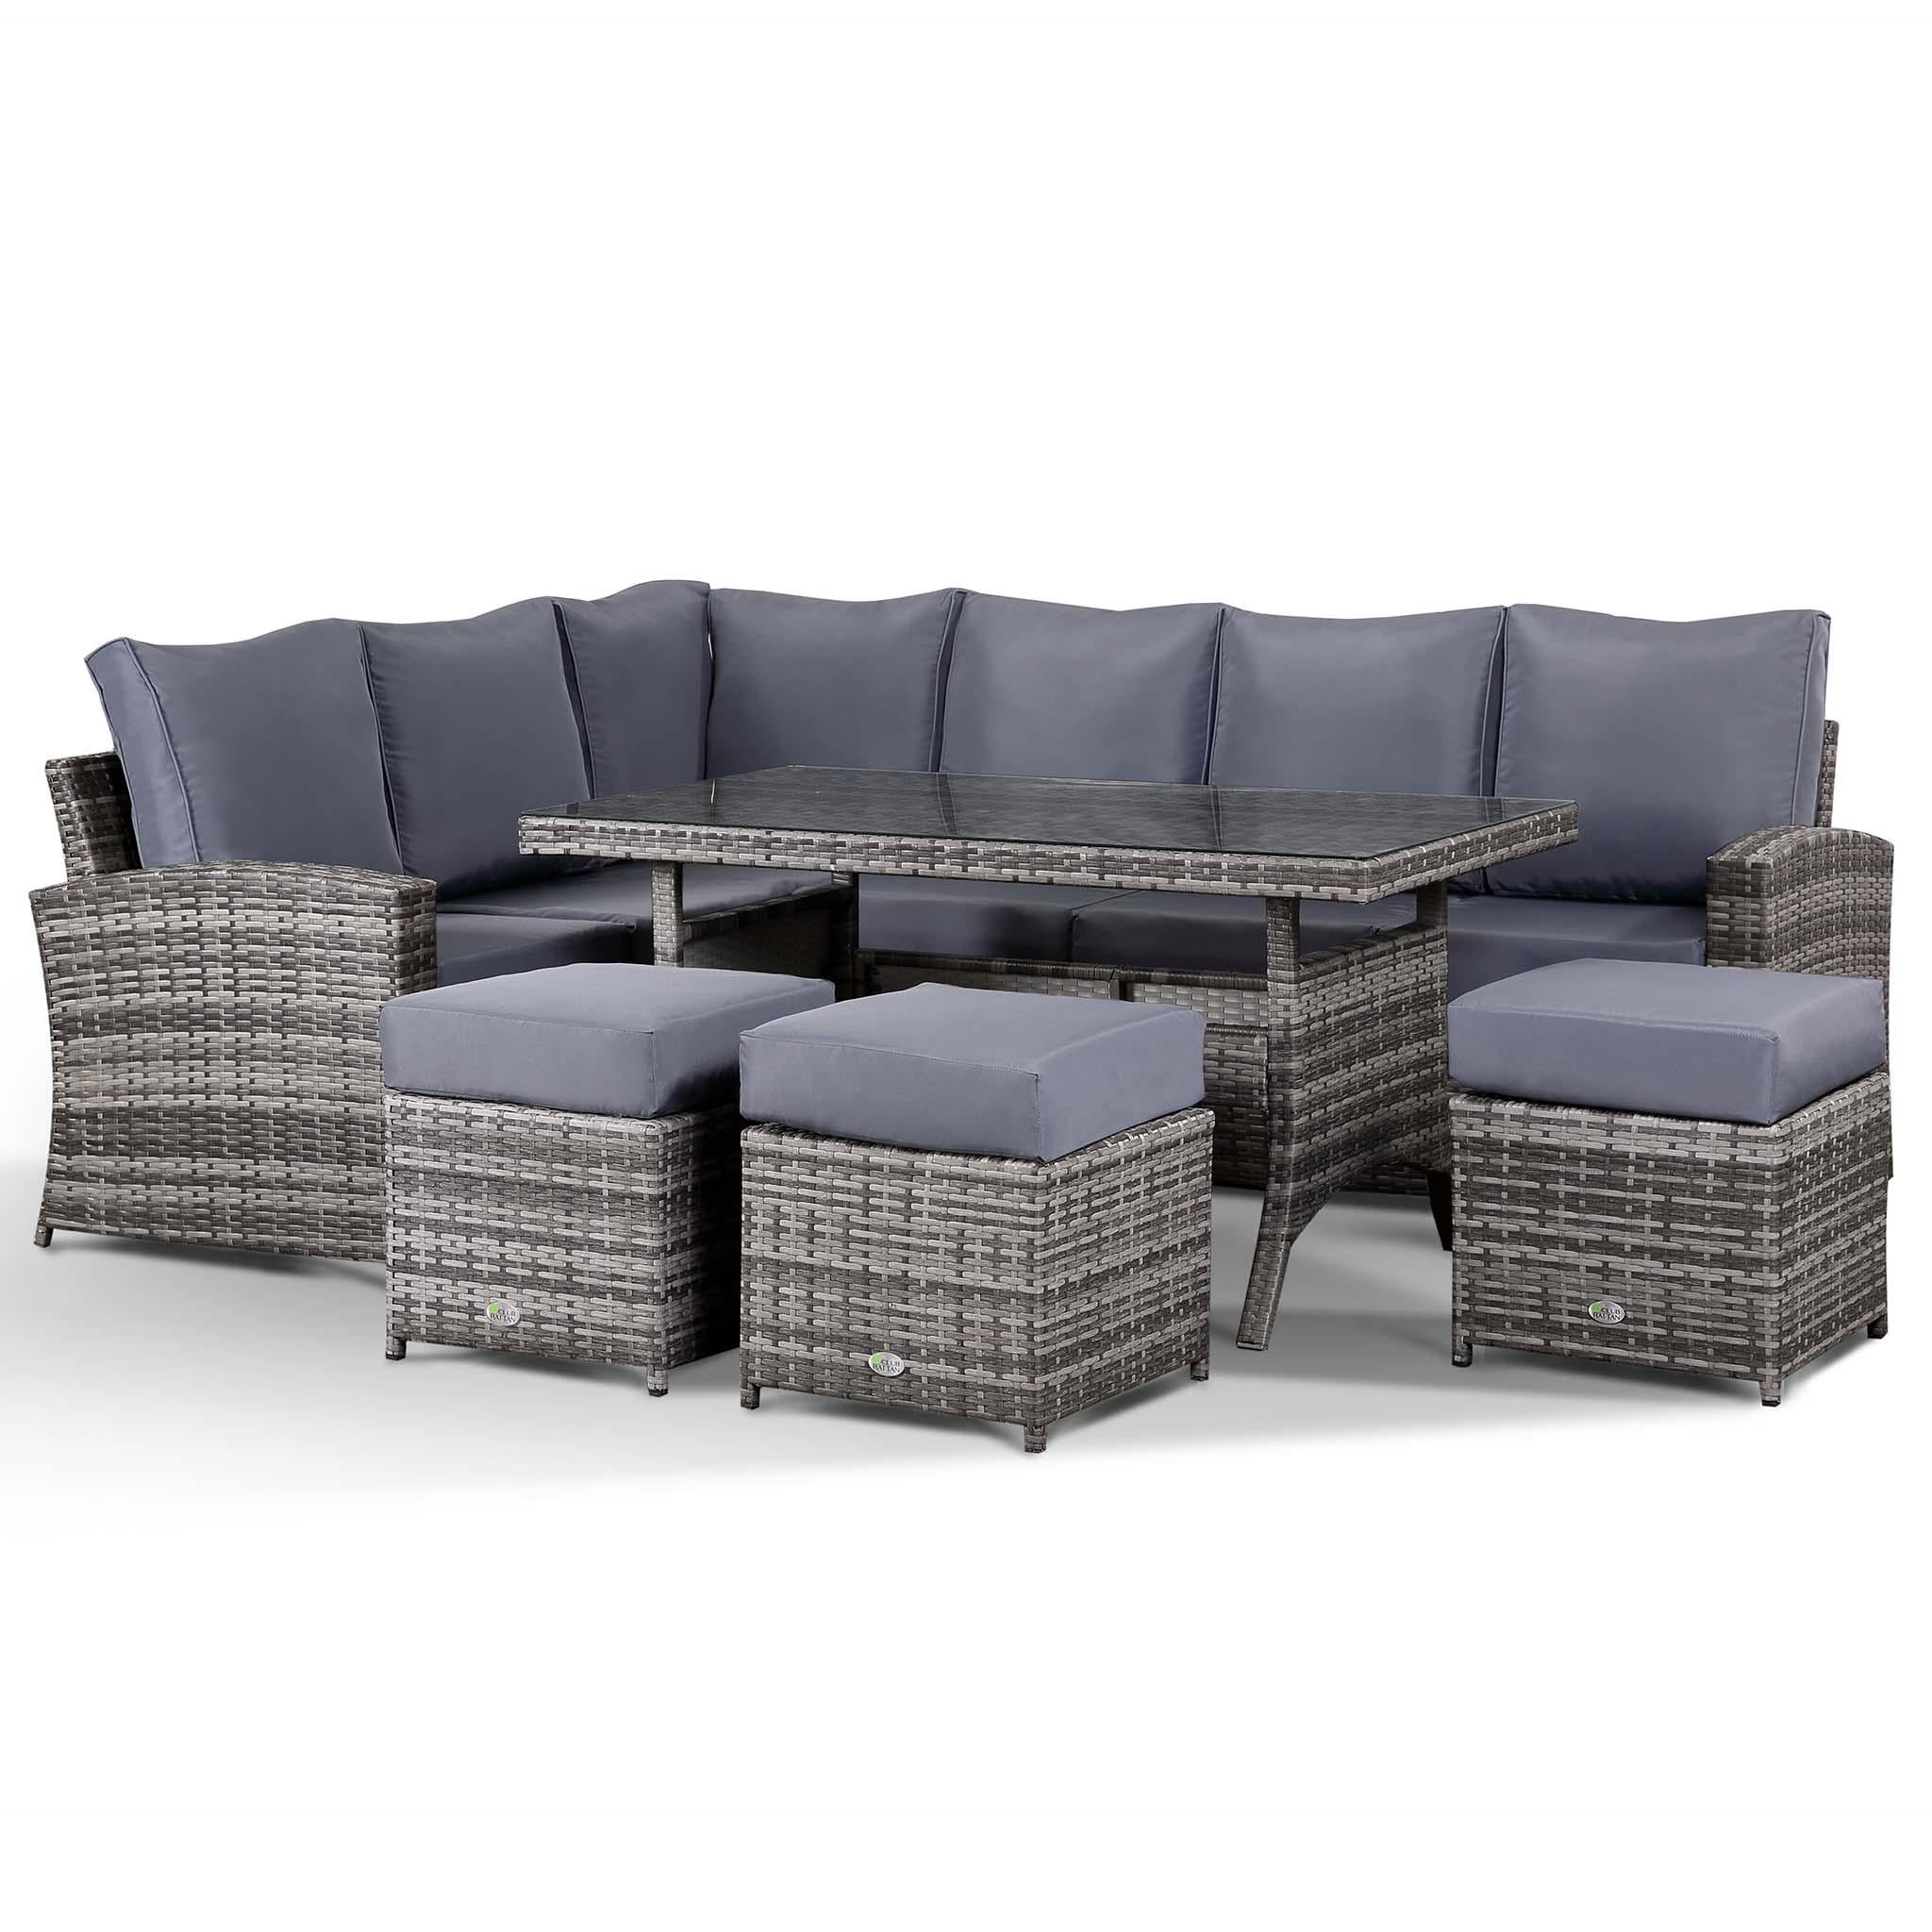 Club Rattan Harmony Garden Corner Sofa with Dining Table and